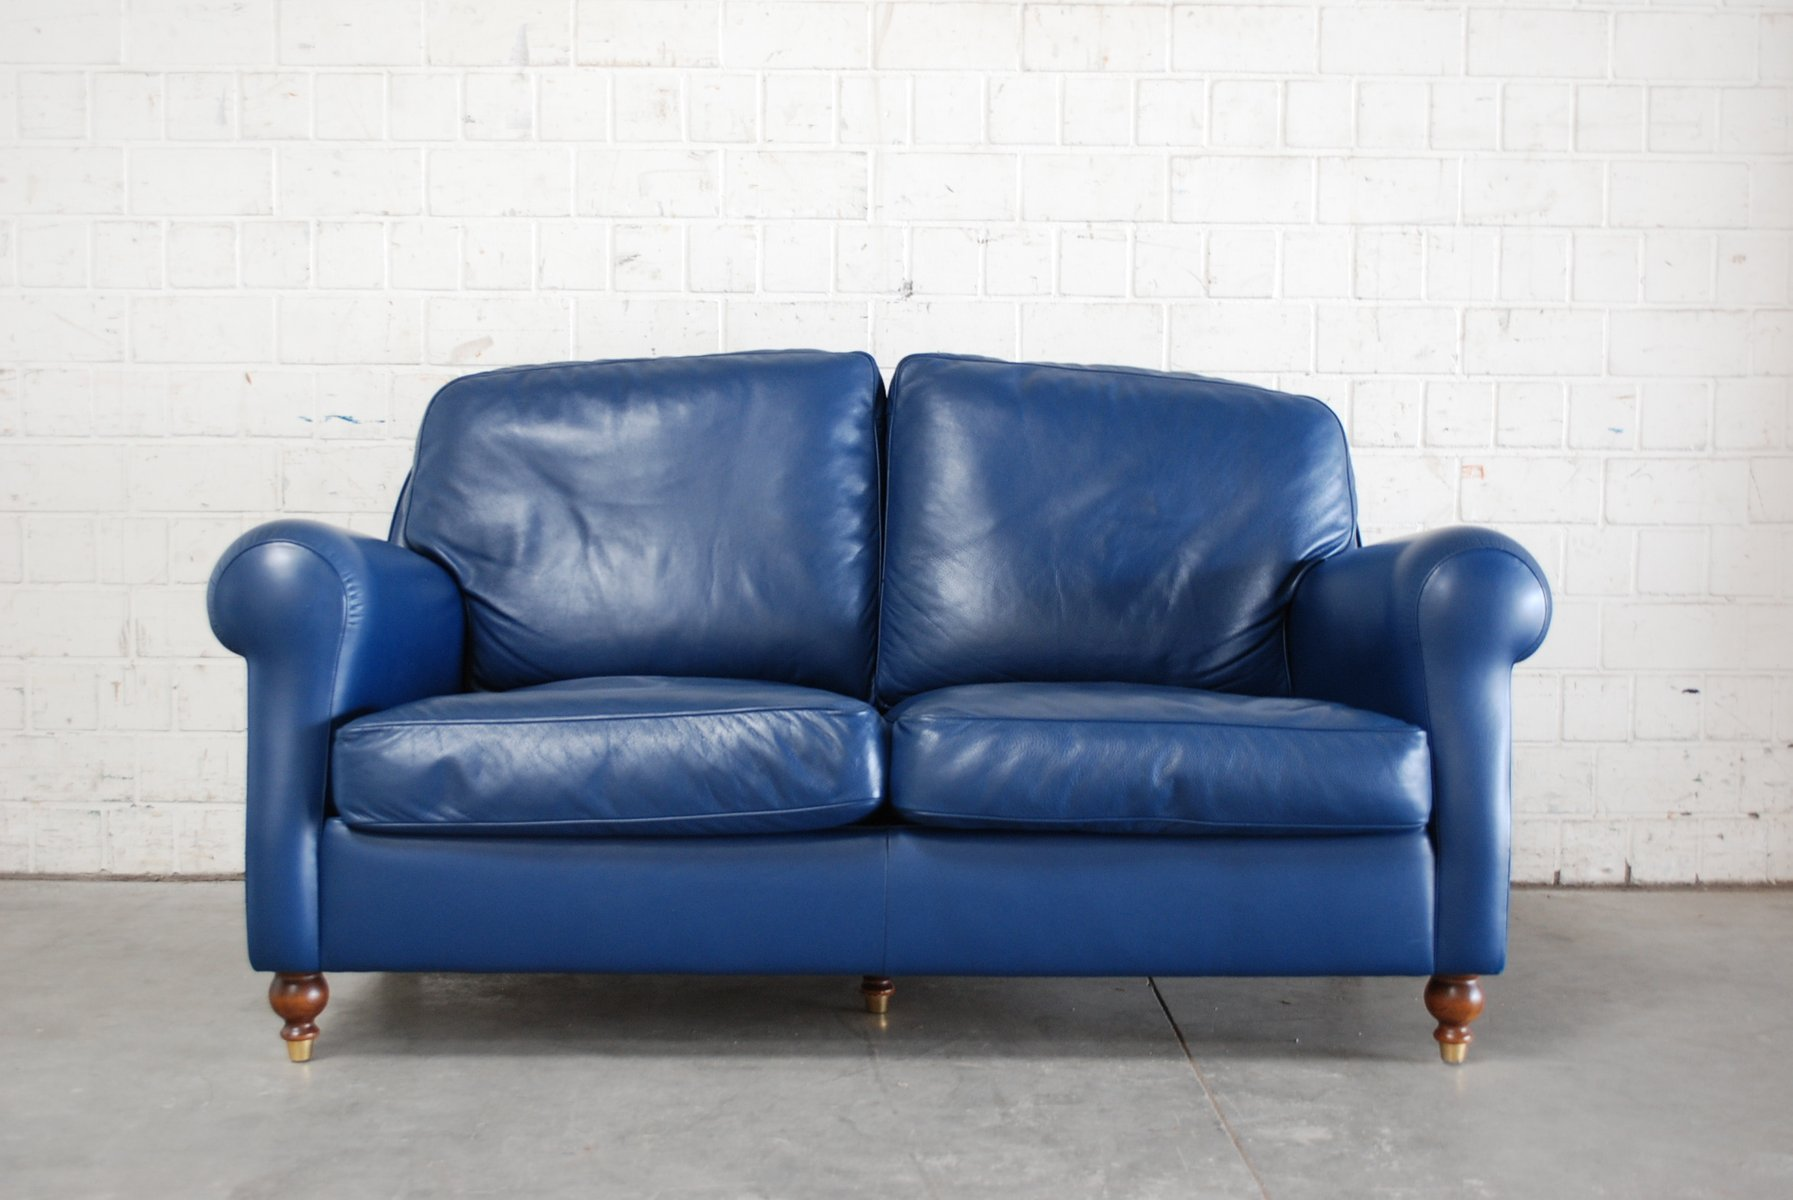 Blue Leather George Sofa From Poltrona Frau 1999 For Sale At Pamono